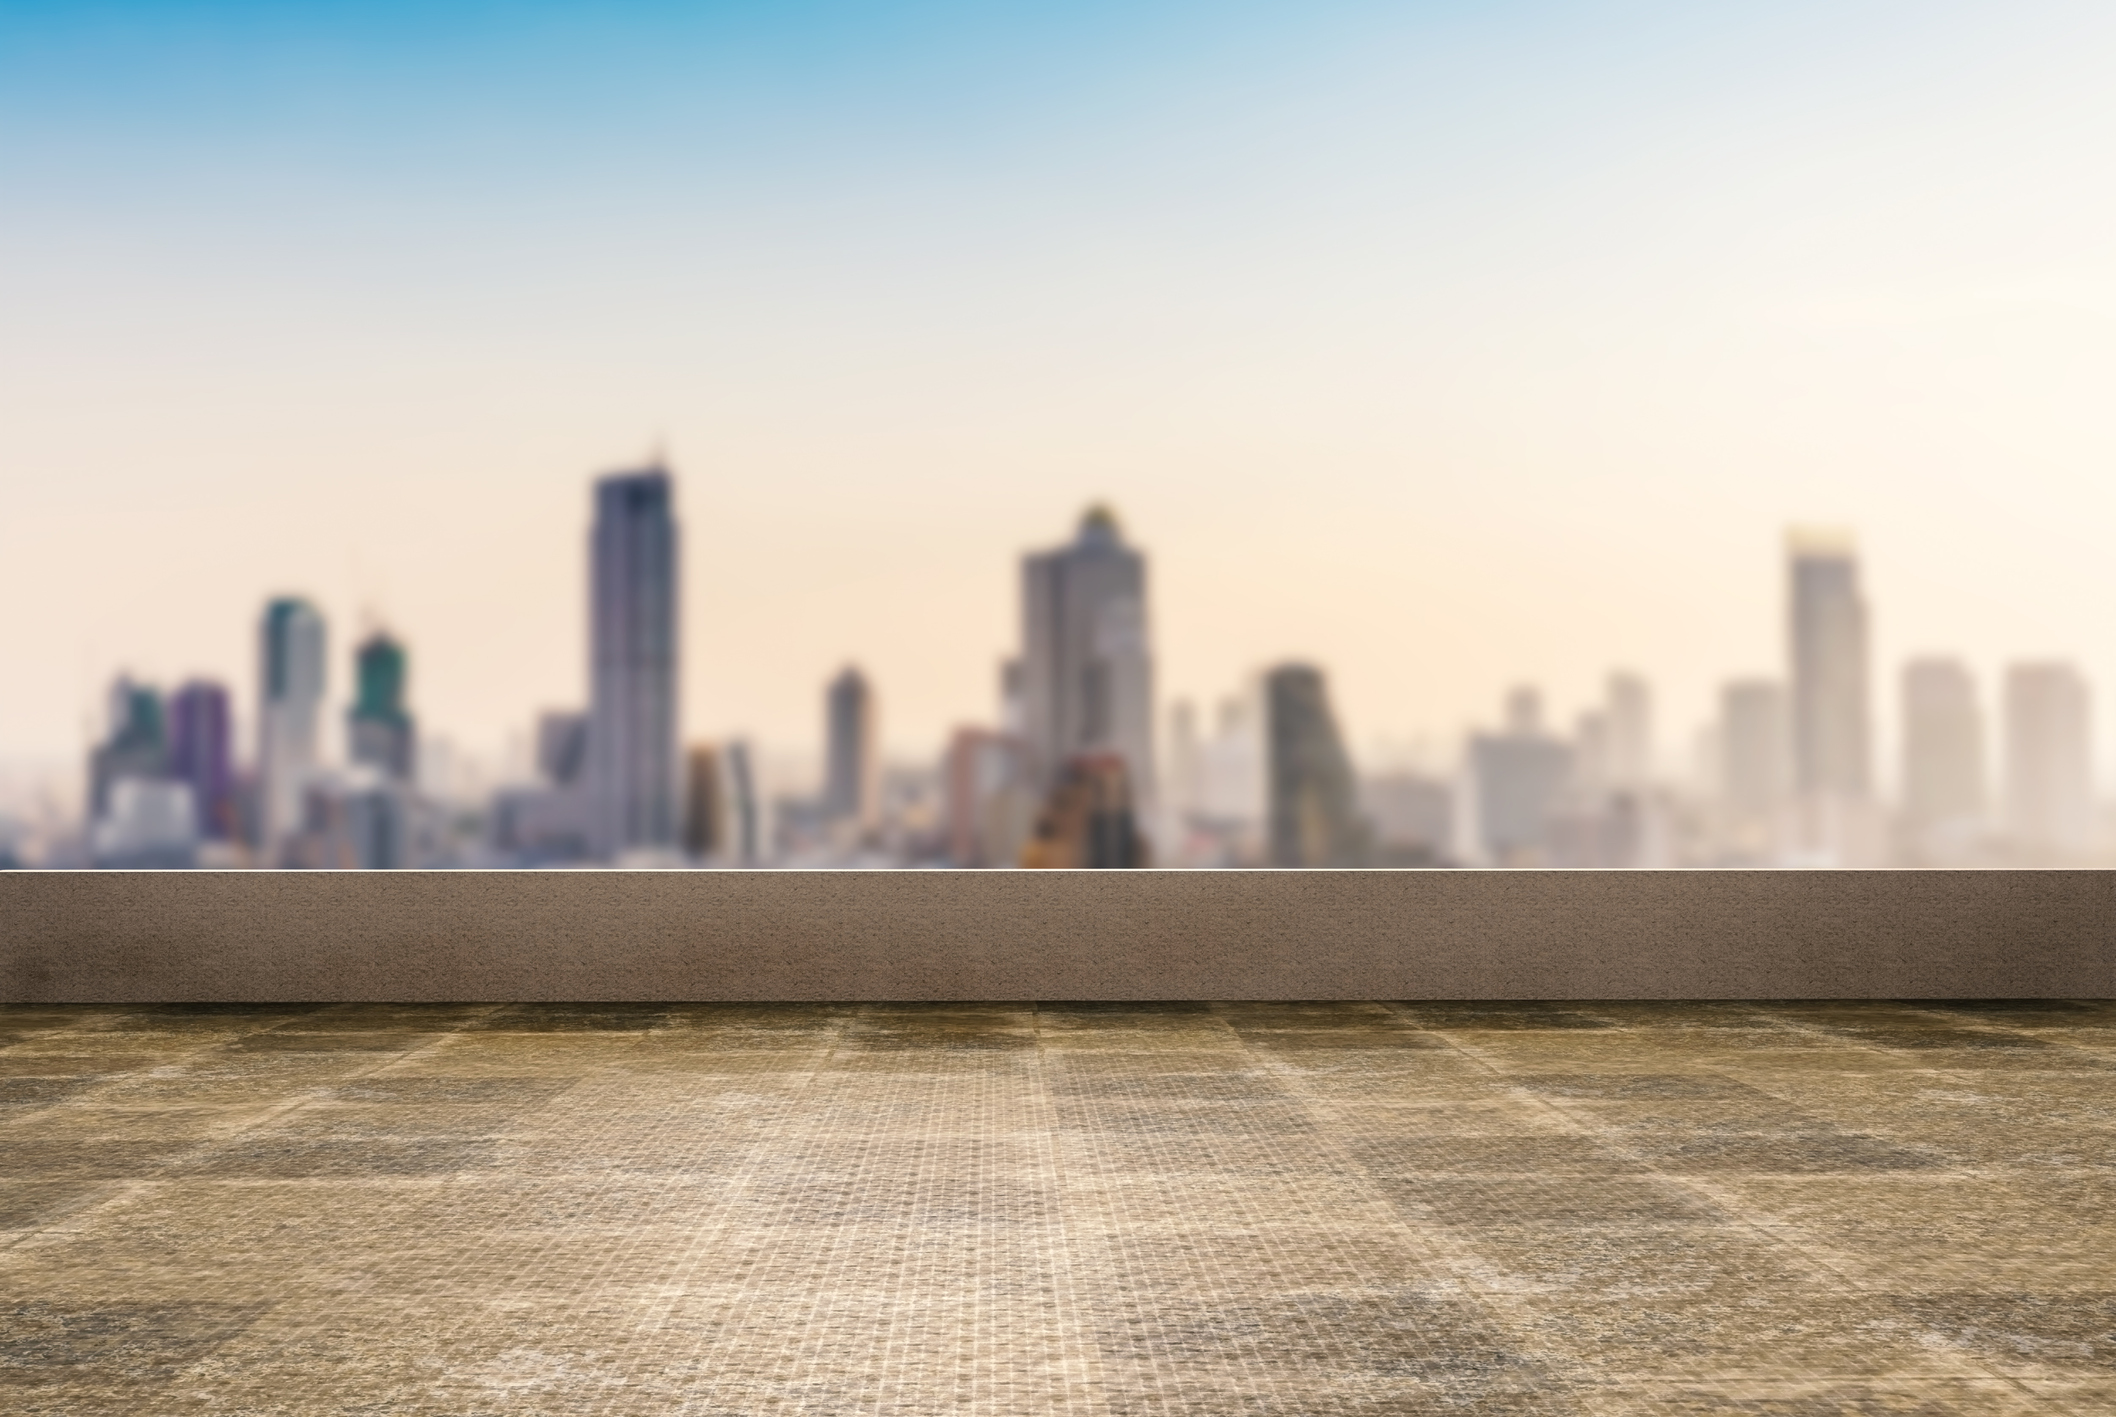 flat roof with a cityscape